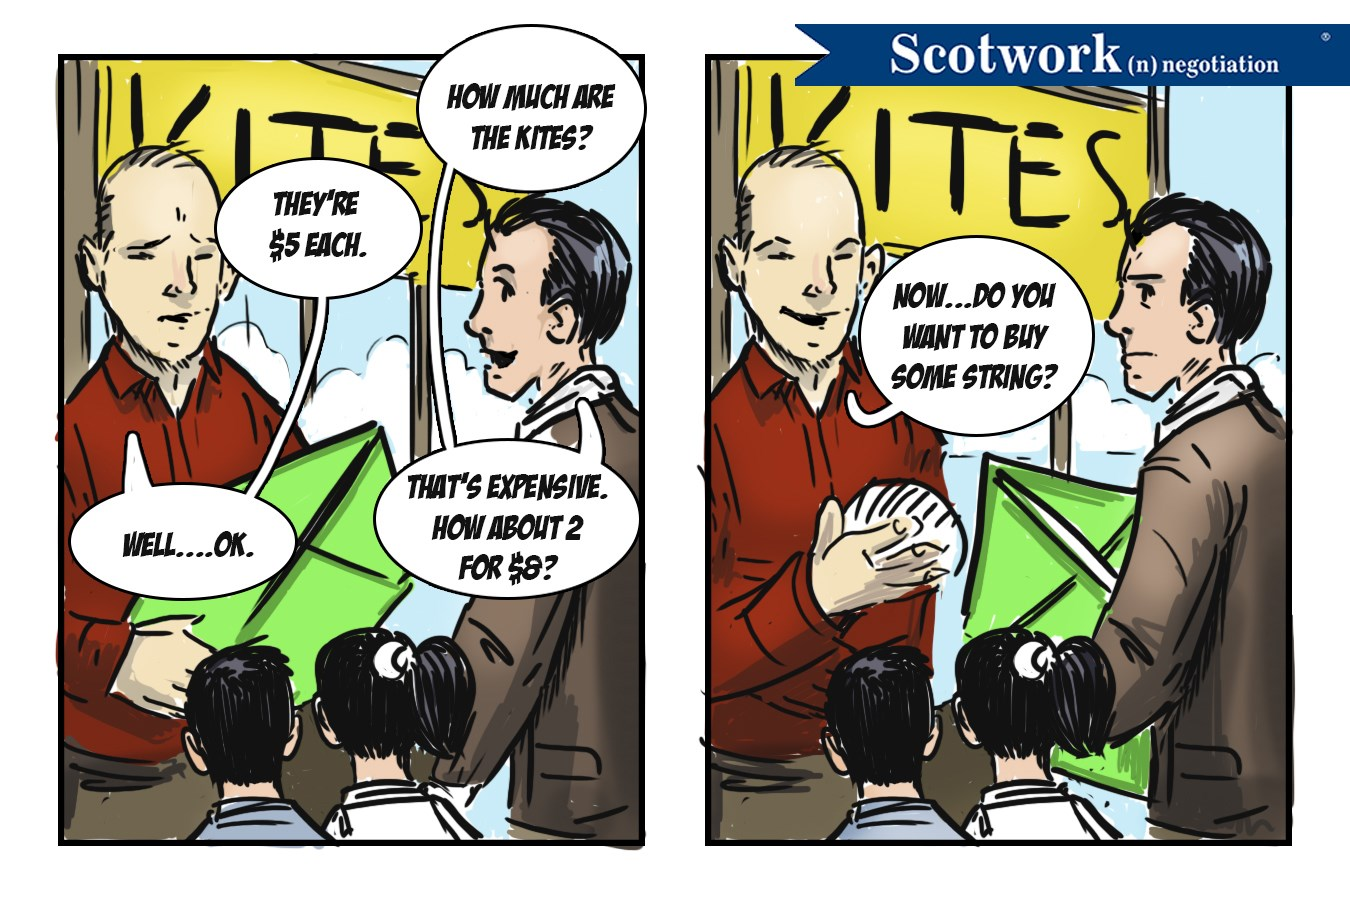 scotwork_comic_2018_02_26_dont_forget_the_string.jpg (1)